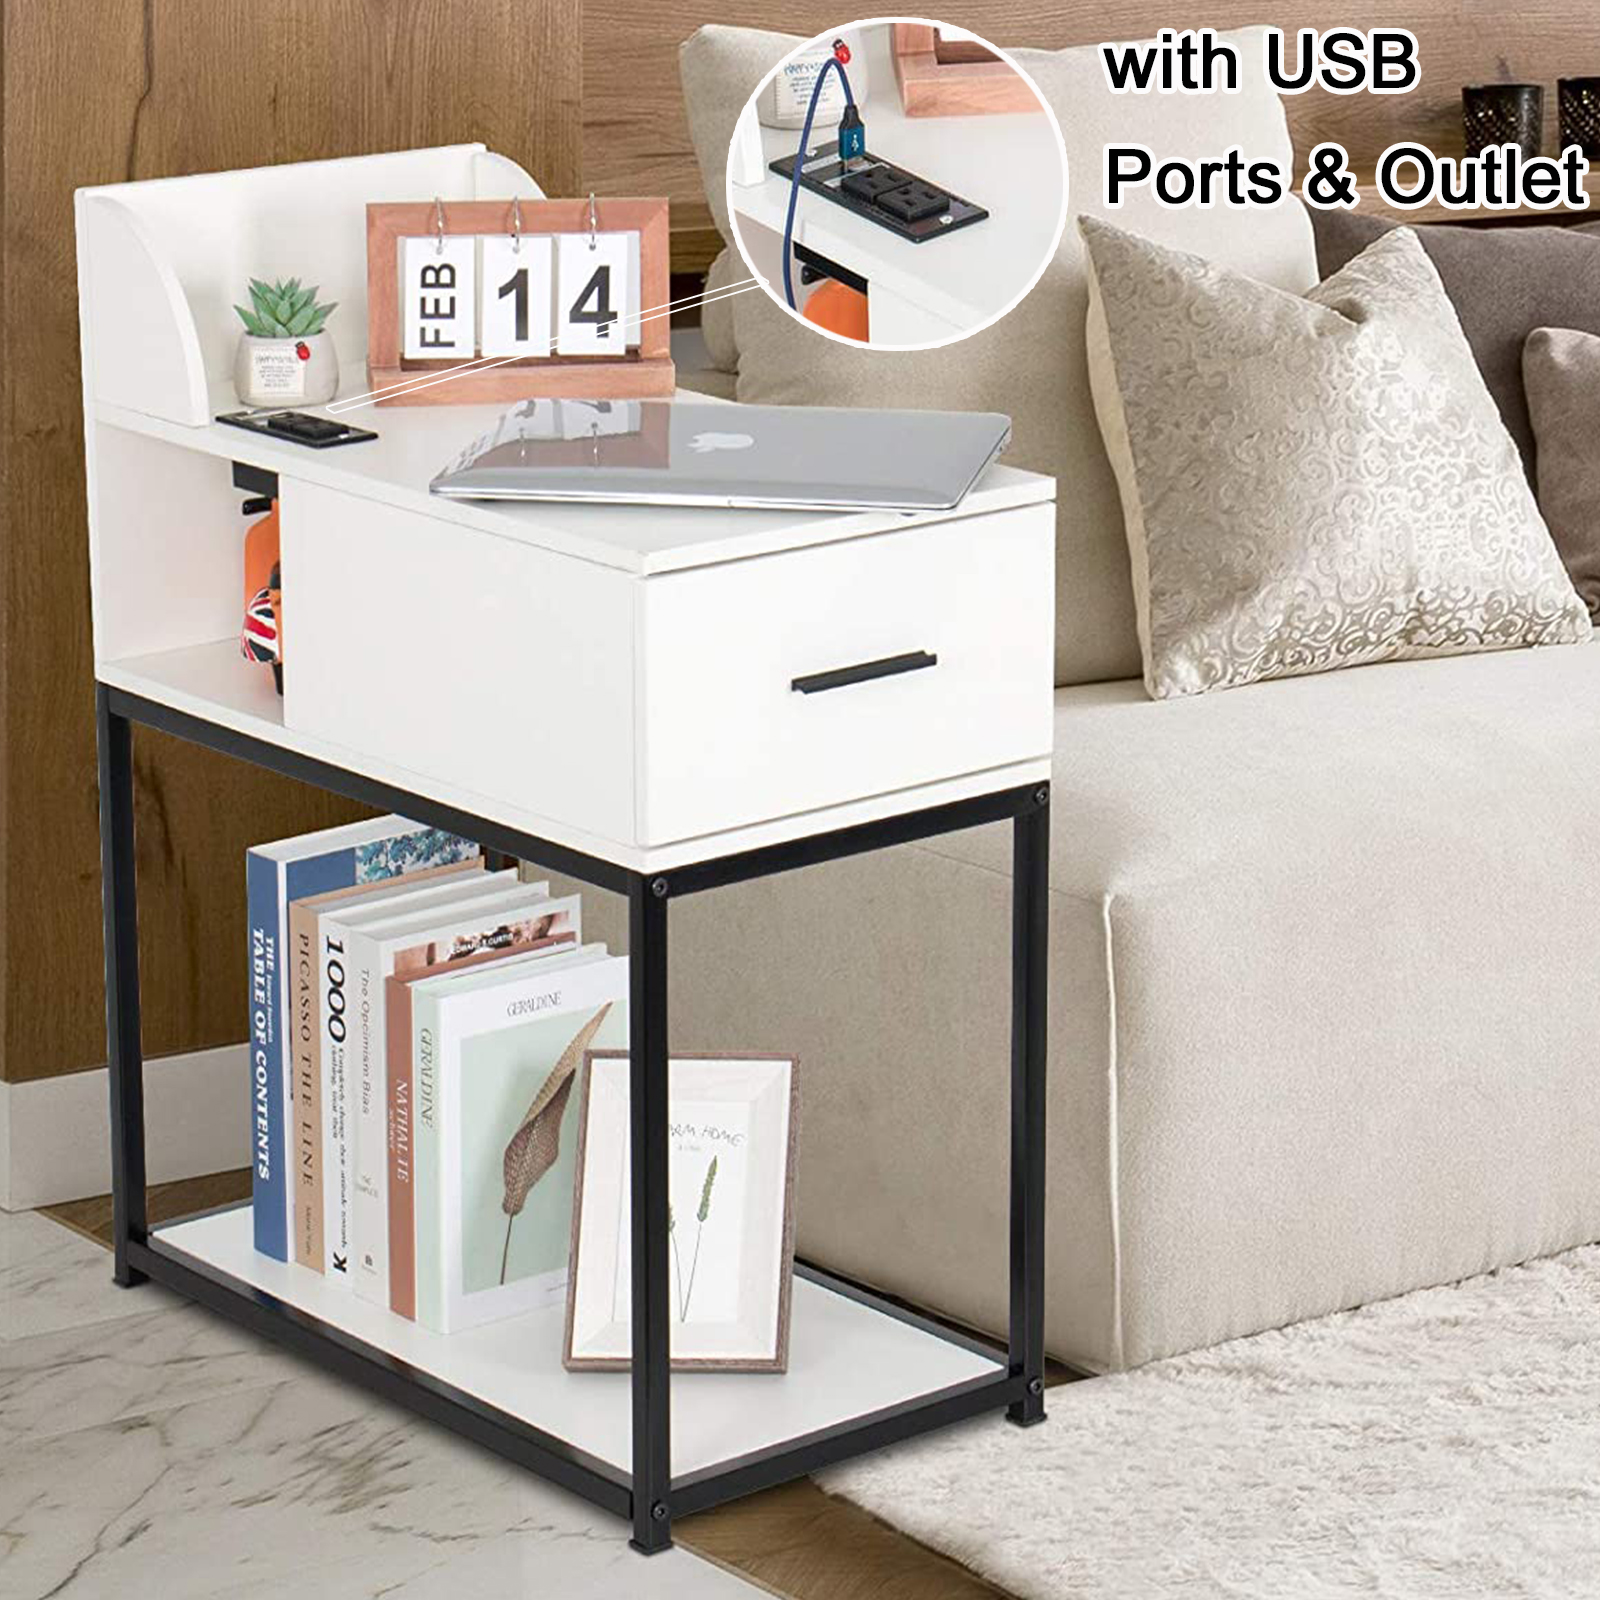 White End Table Nightstand Slim Side Table Narrow Bedside Table With Usb Port For Sofa Couch Living Room Bedroom Farmhouse Storage Small Tall Bed Side Table Night Stand Modern Mid Century Walmart Com Walmart Com